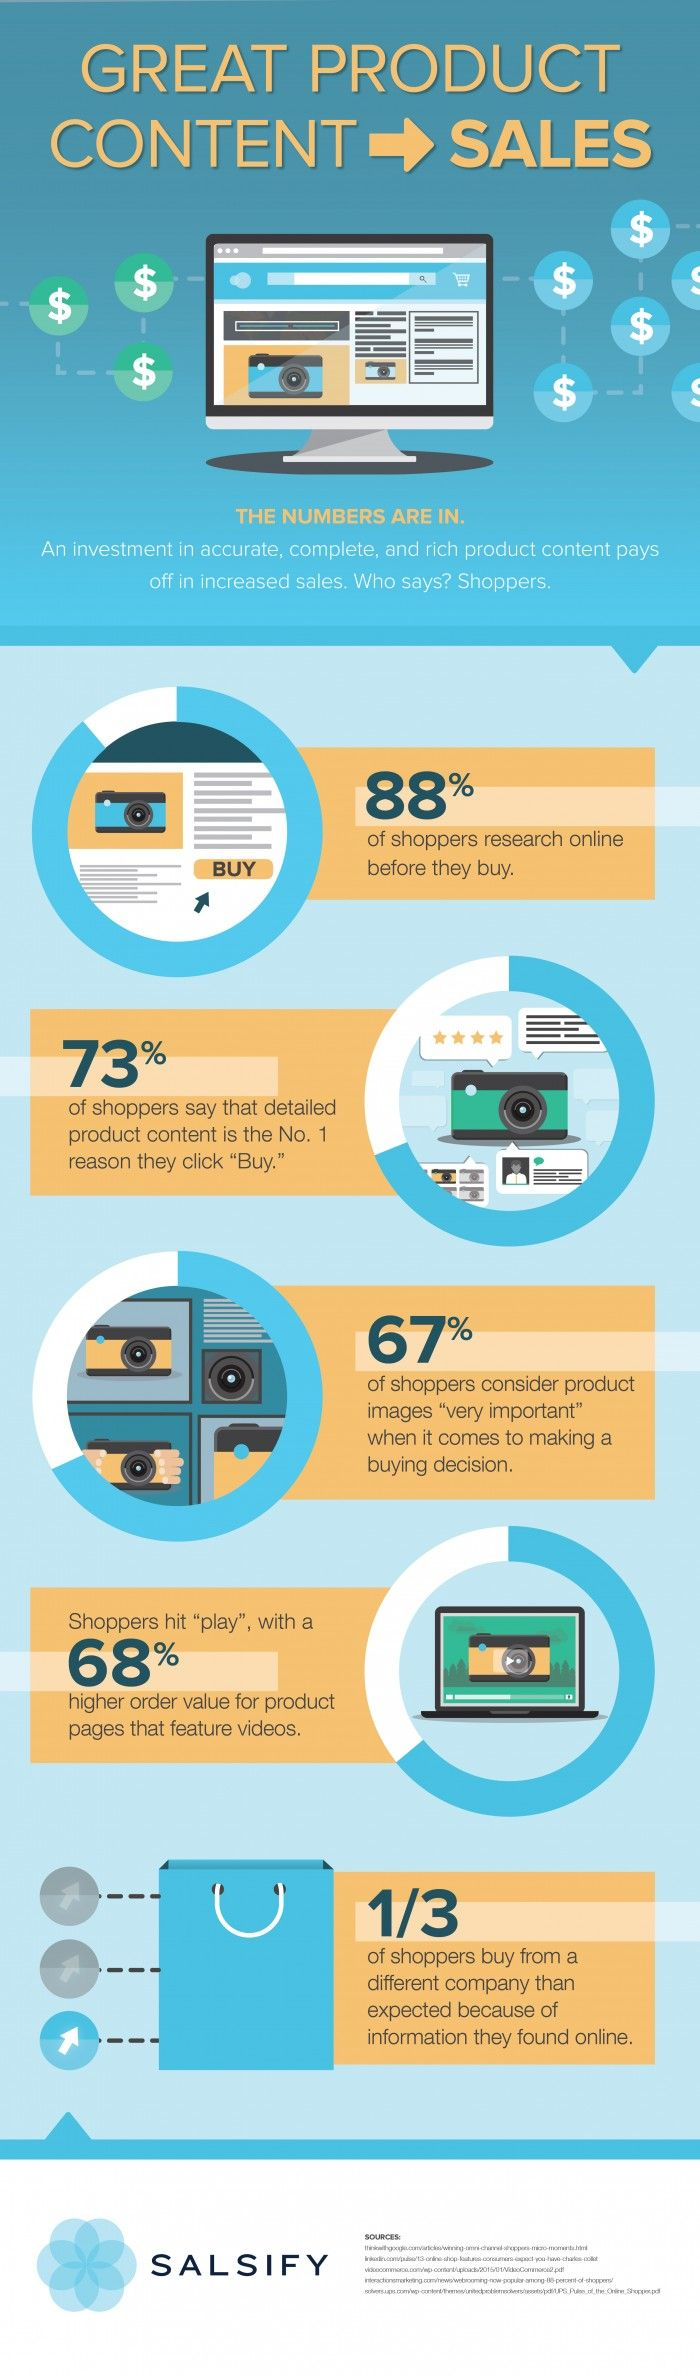 Great Product Content Drives Sales #Infographic